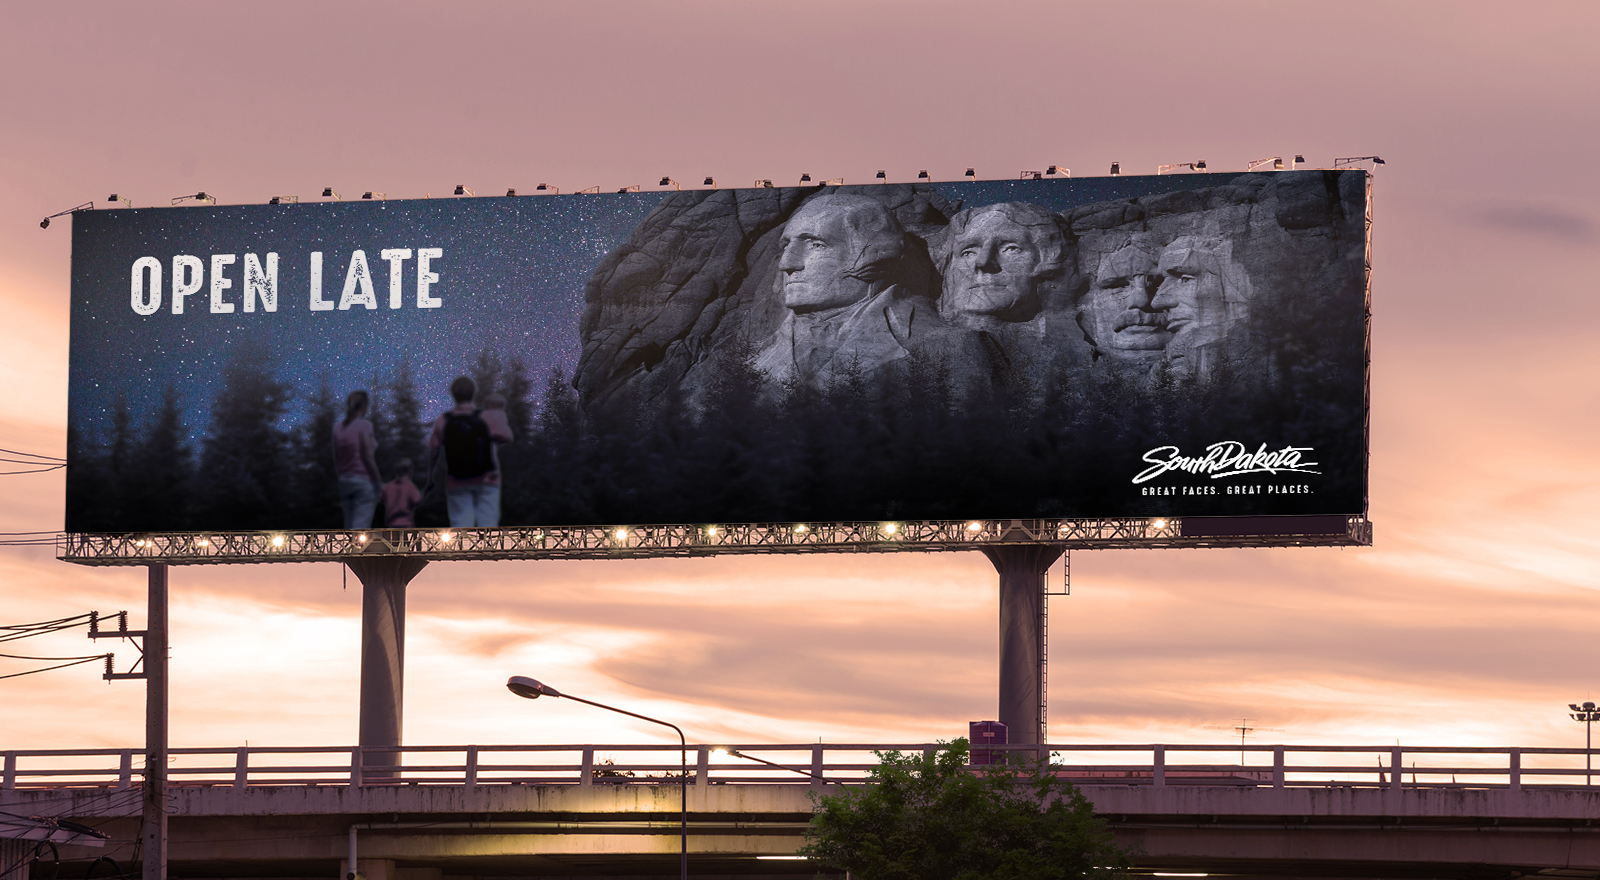 SD billboard